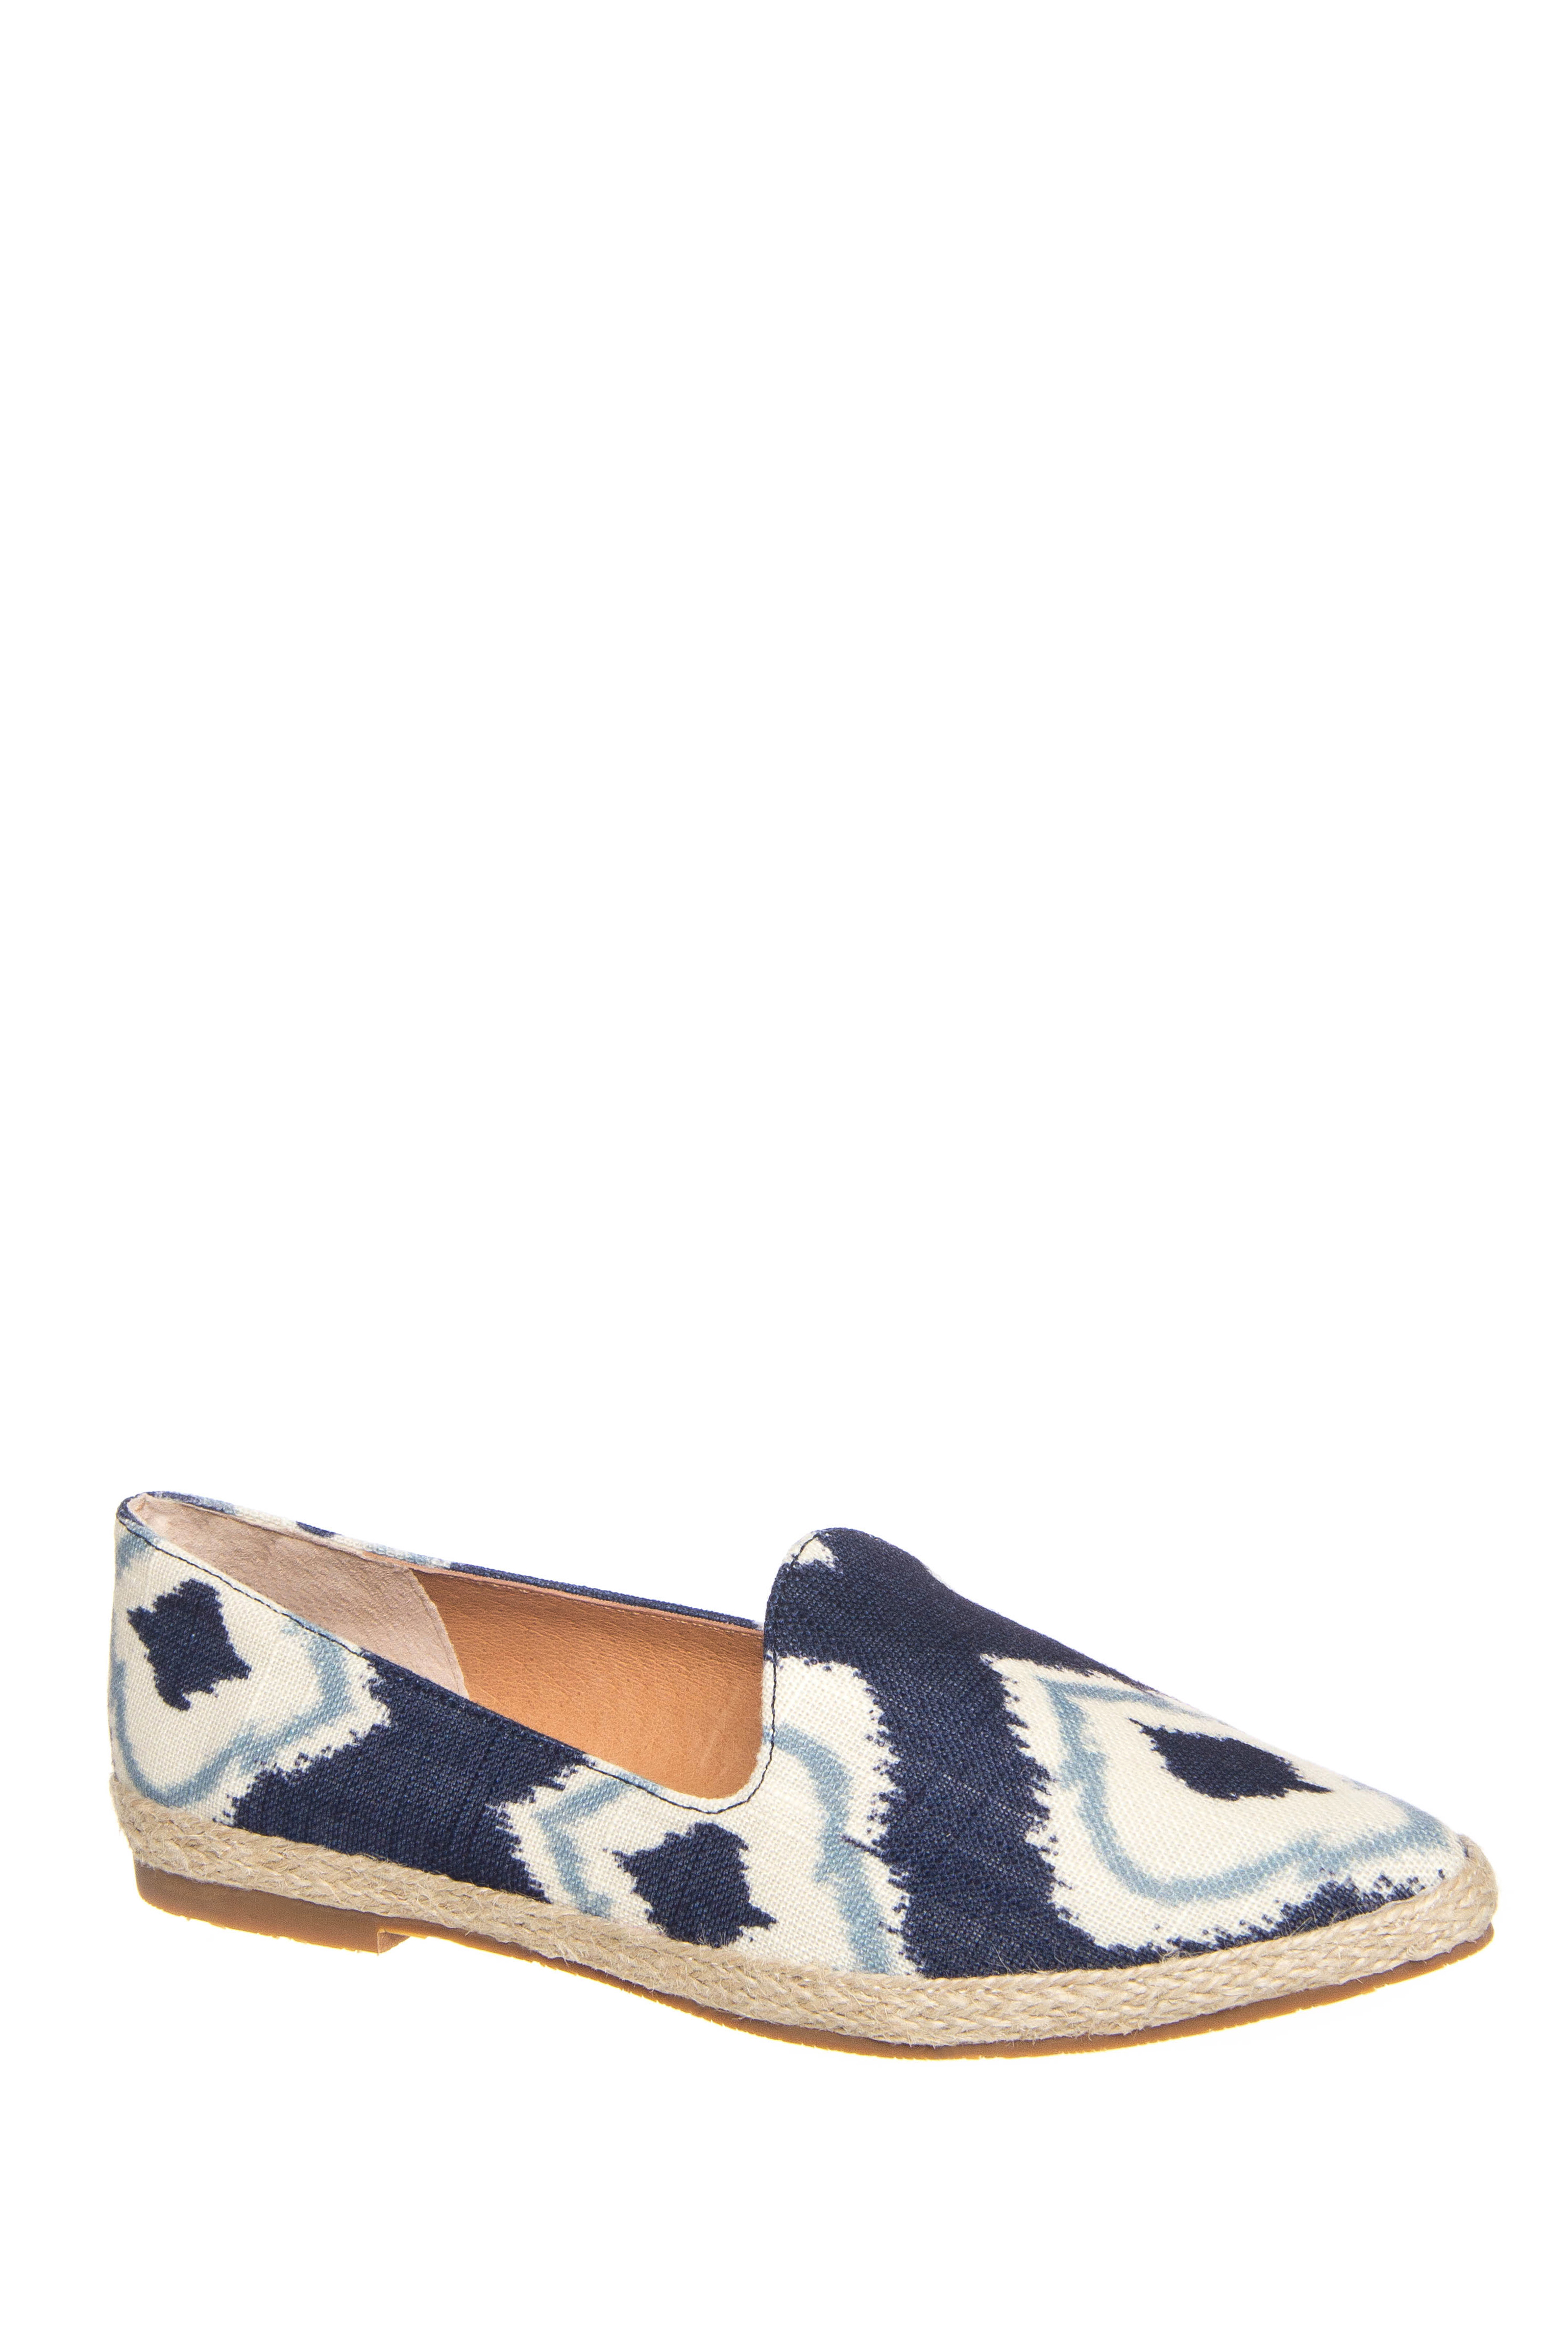 Seychelles Browse Slide On Loafers - Indigo Print